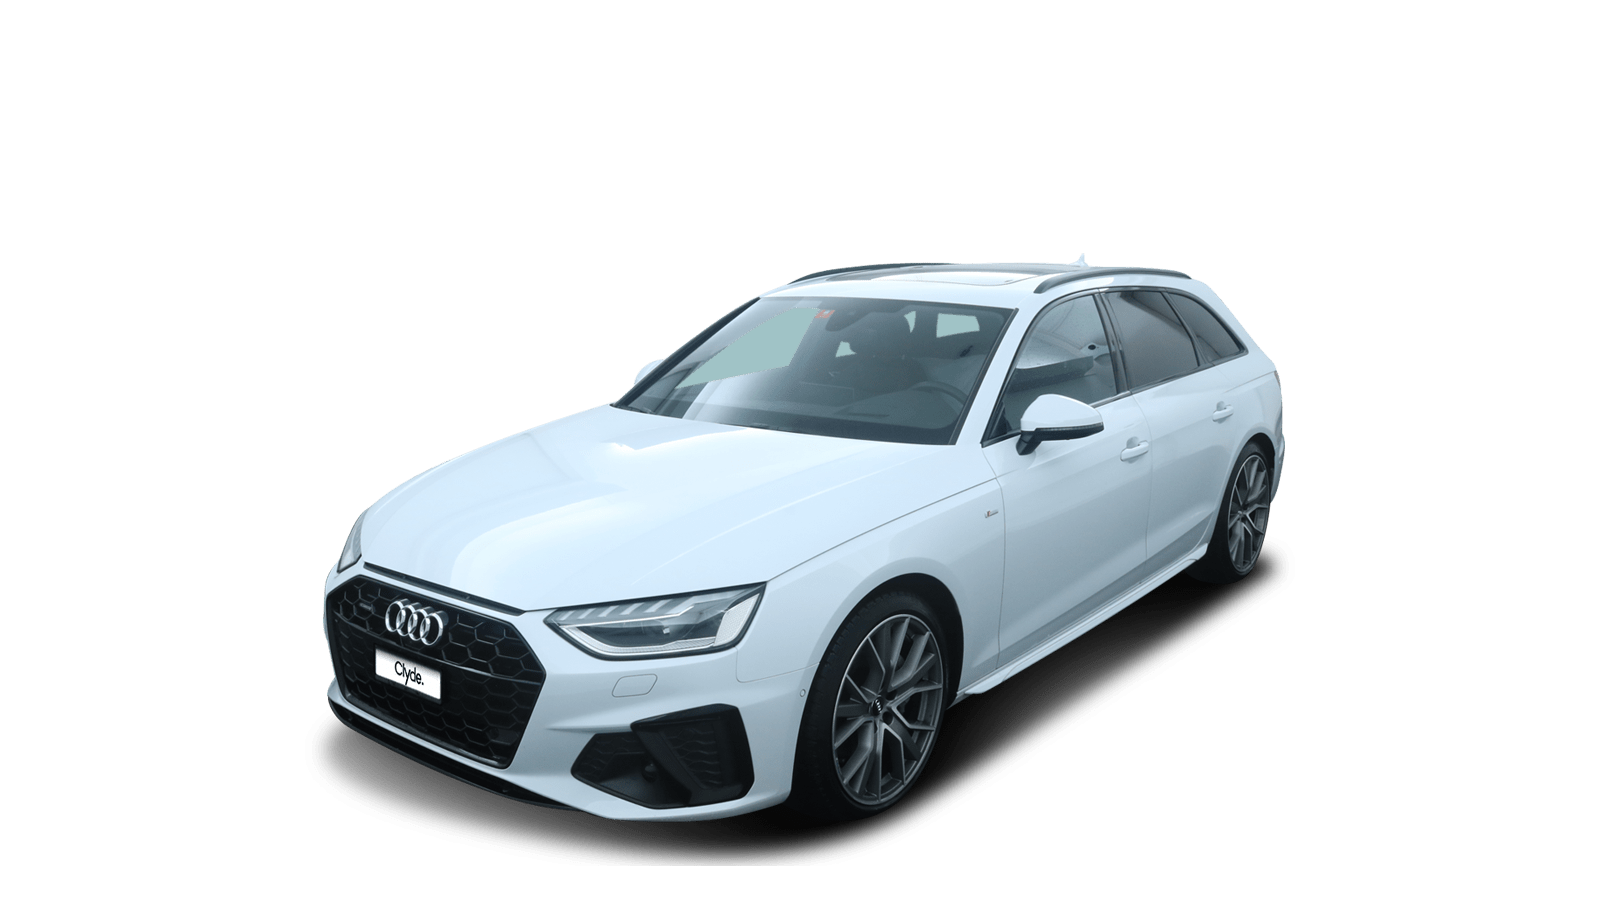 Audi A4 Avant Weiss front - Clyde Auto-Abo